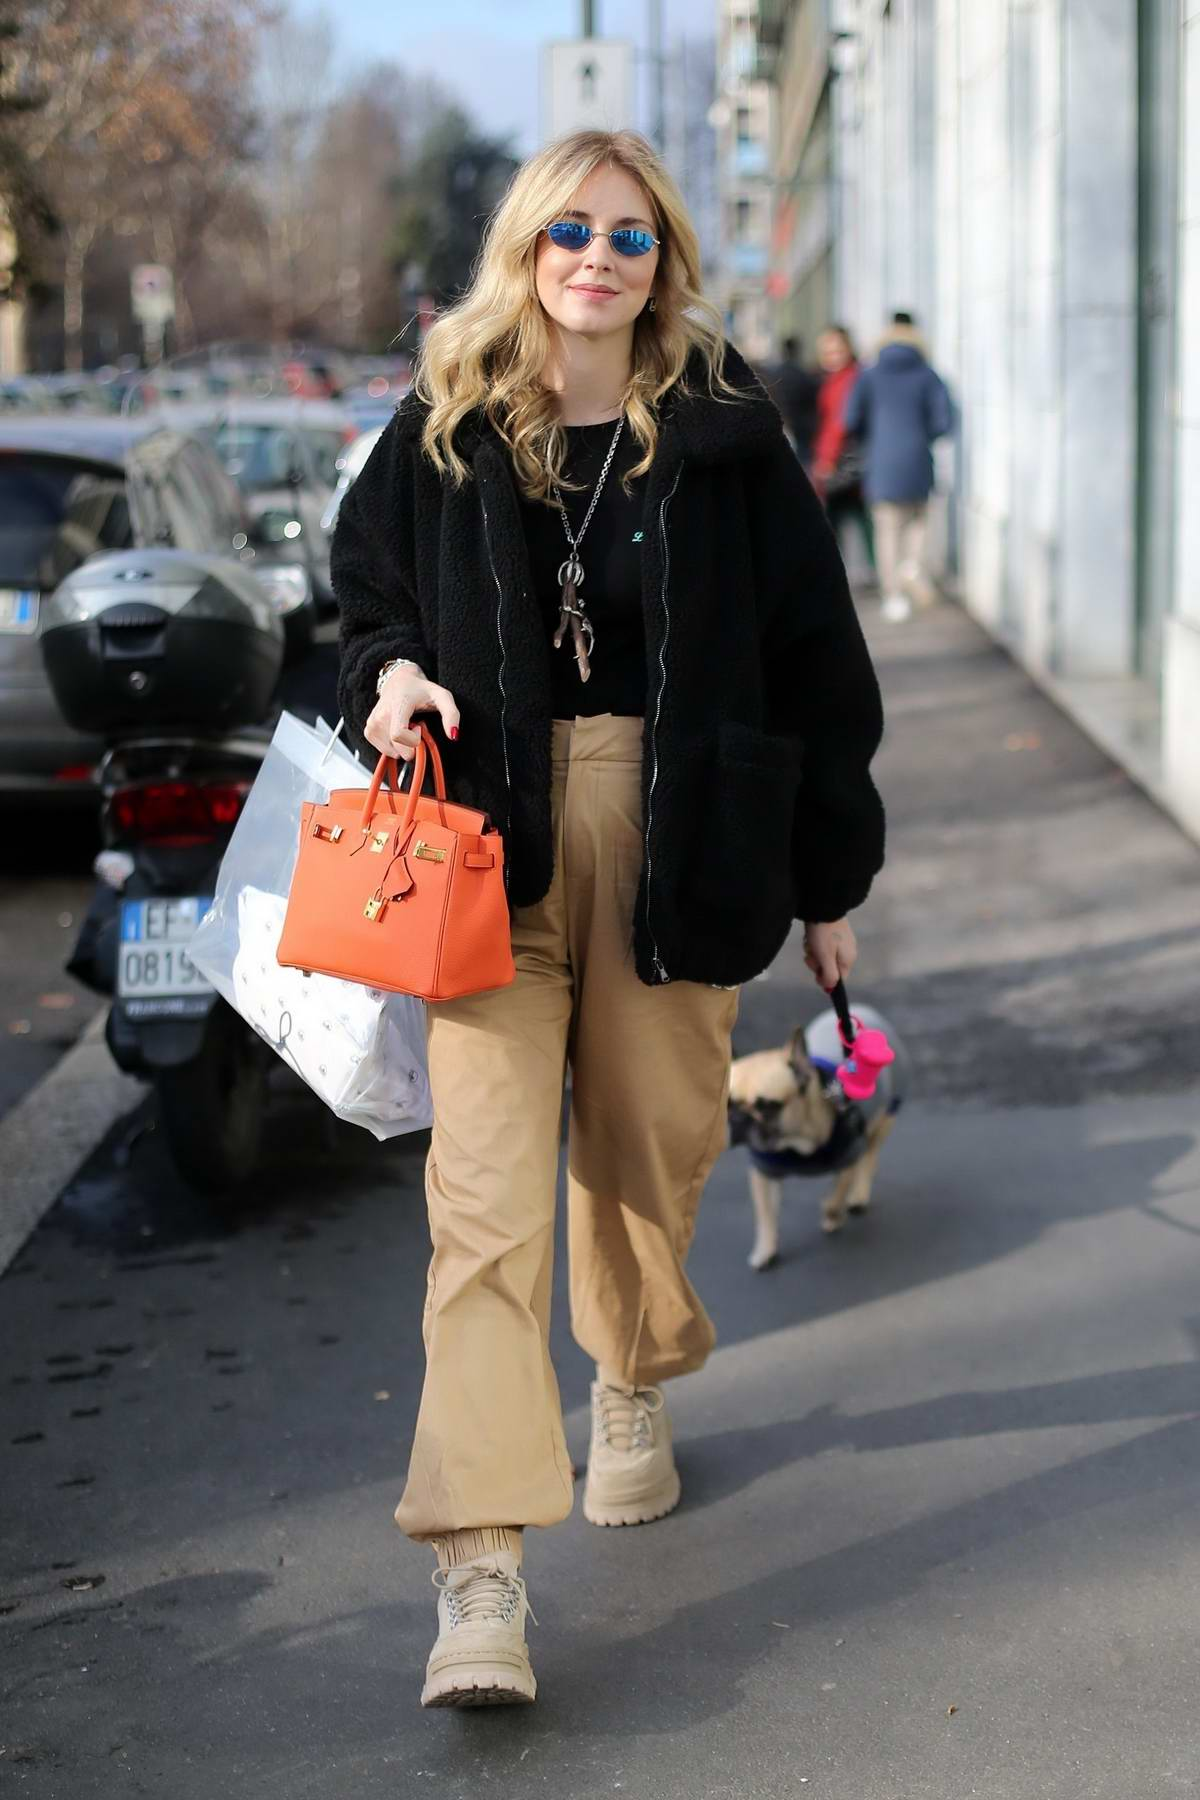 Chiara Ferragni make a visit to the hairdresser before heading out with friends in Milan, Italy